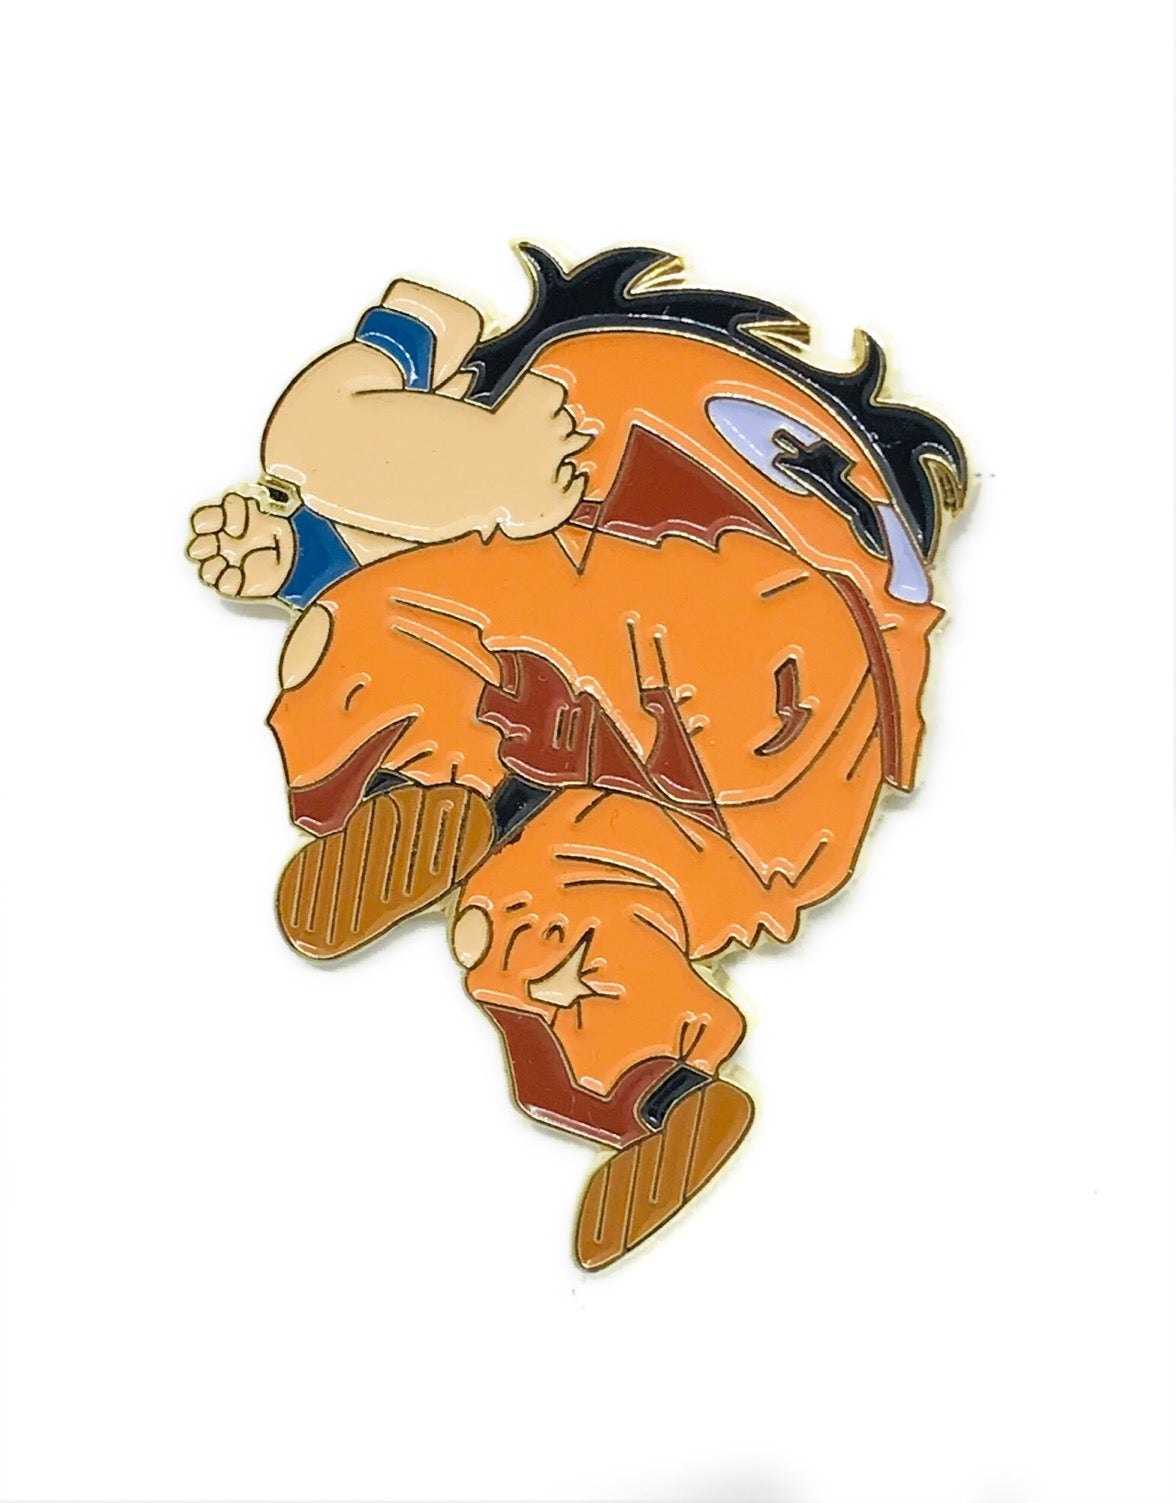 Dead Earth Warrior Soft Enamel Pin